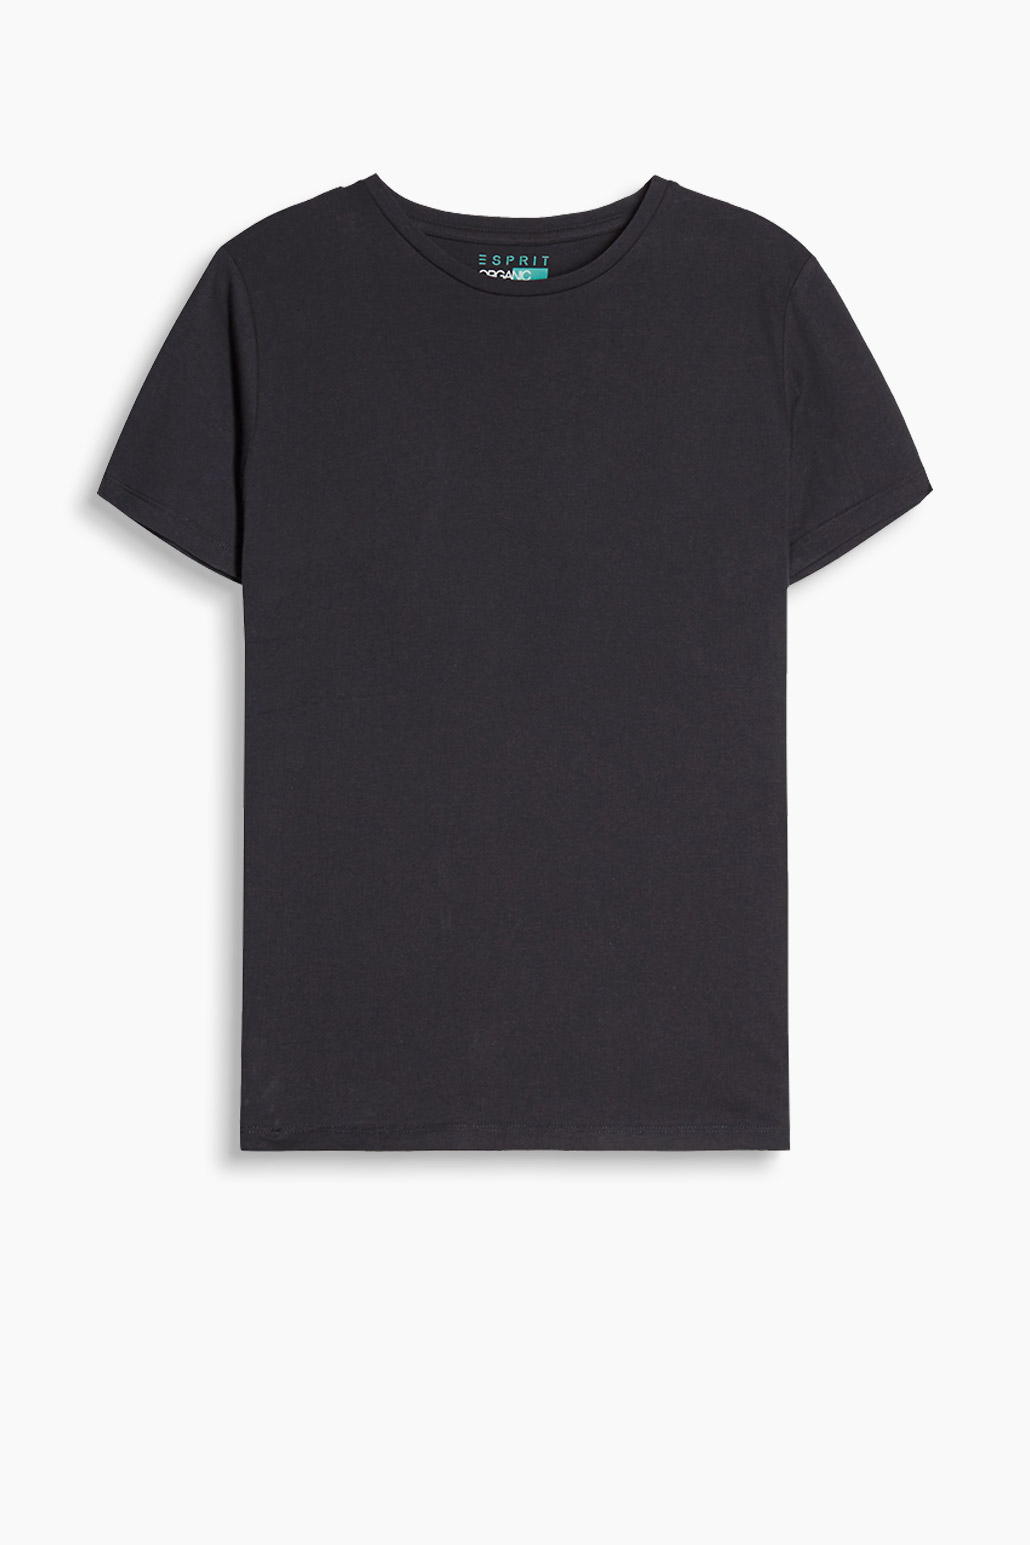 Esprit Black T-Shirt